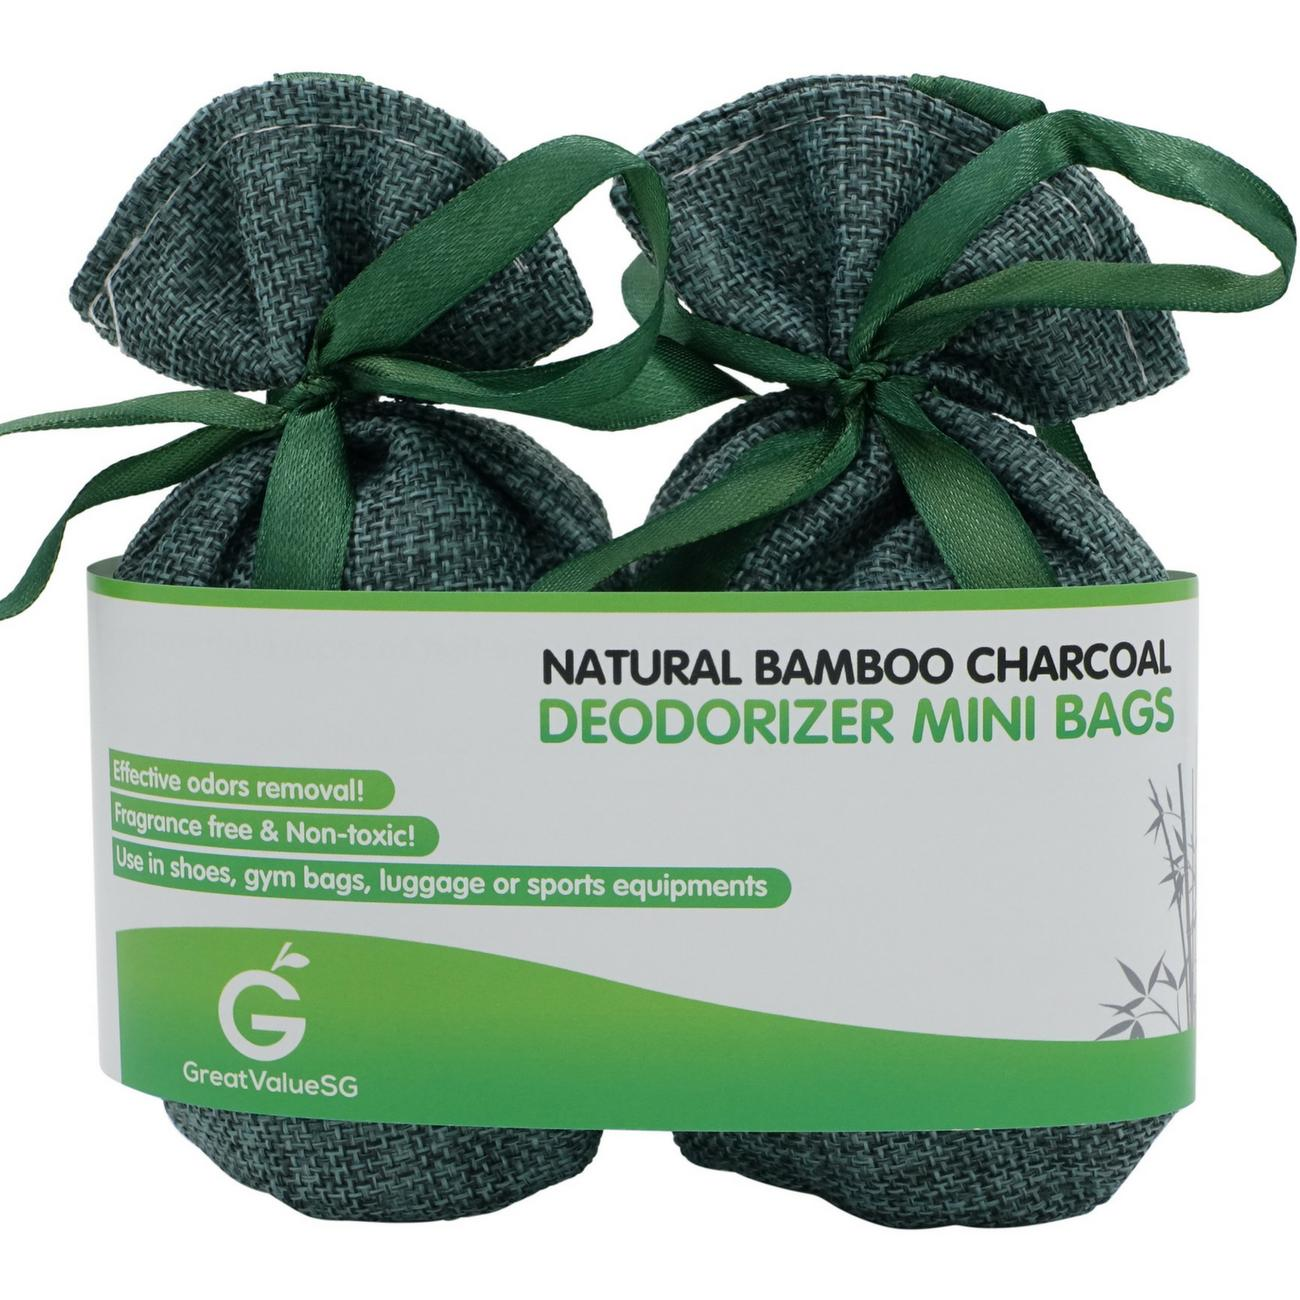 Recent Great Value Sg Natural Bamboo Charcoal Deodorizer Mini Bags Bestodor Eliminator And Moisture Absorber Keep Air Dry And Fresh Portable Perfect For Shoe Gym Bag Drawer And Locker Viridian Blue